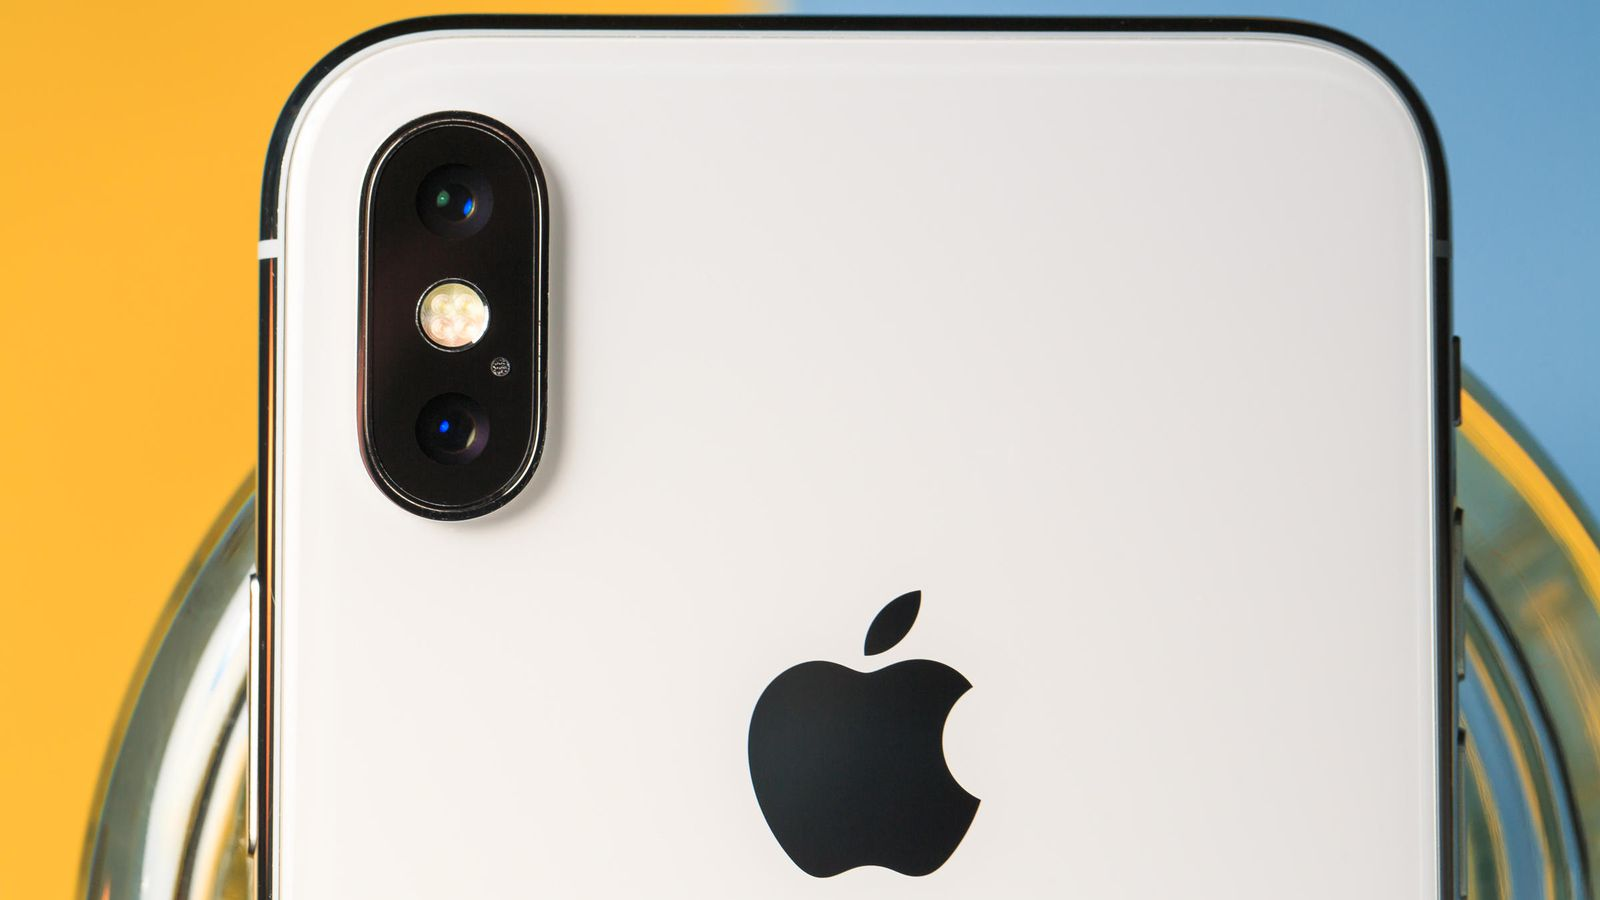 iPhone X dual-camera setup